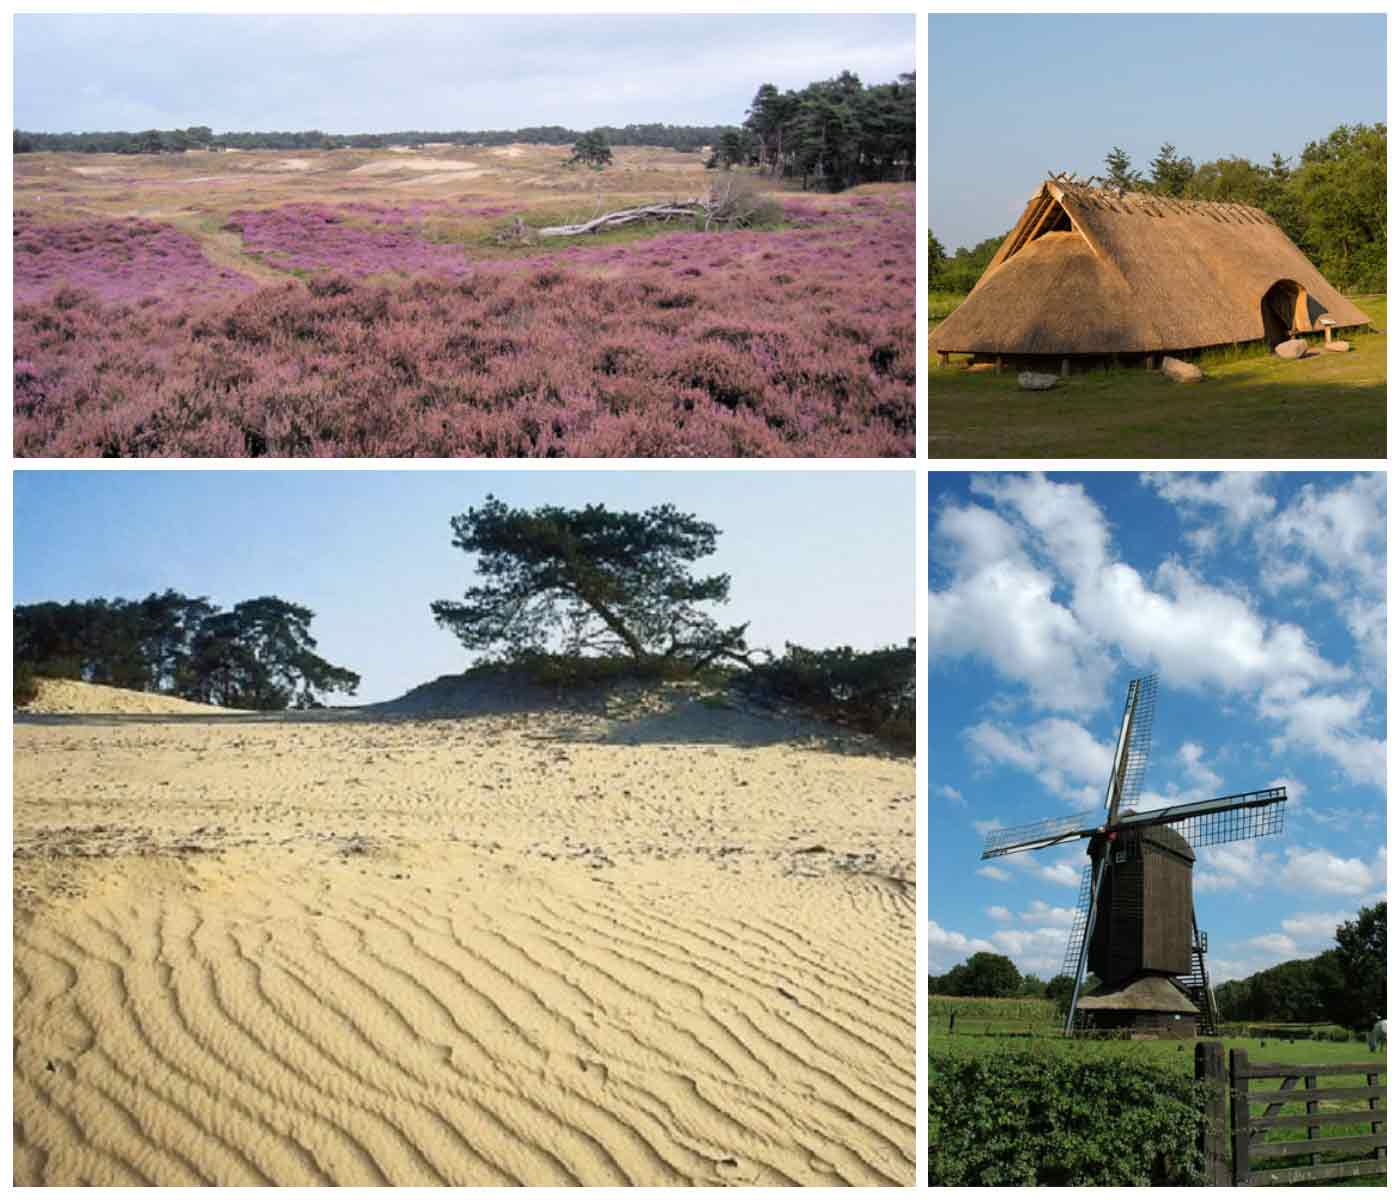 Wekeromsezand.Doesburgermolen.Celtic Fields